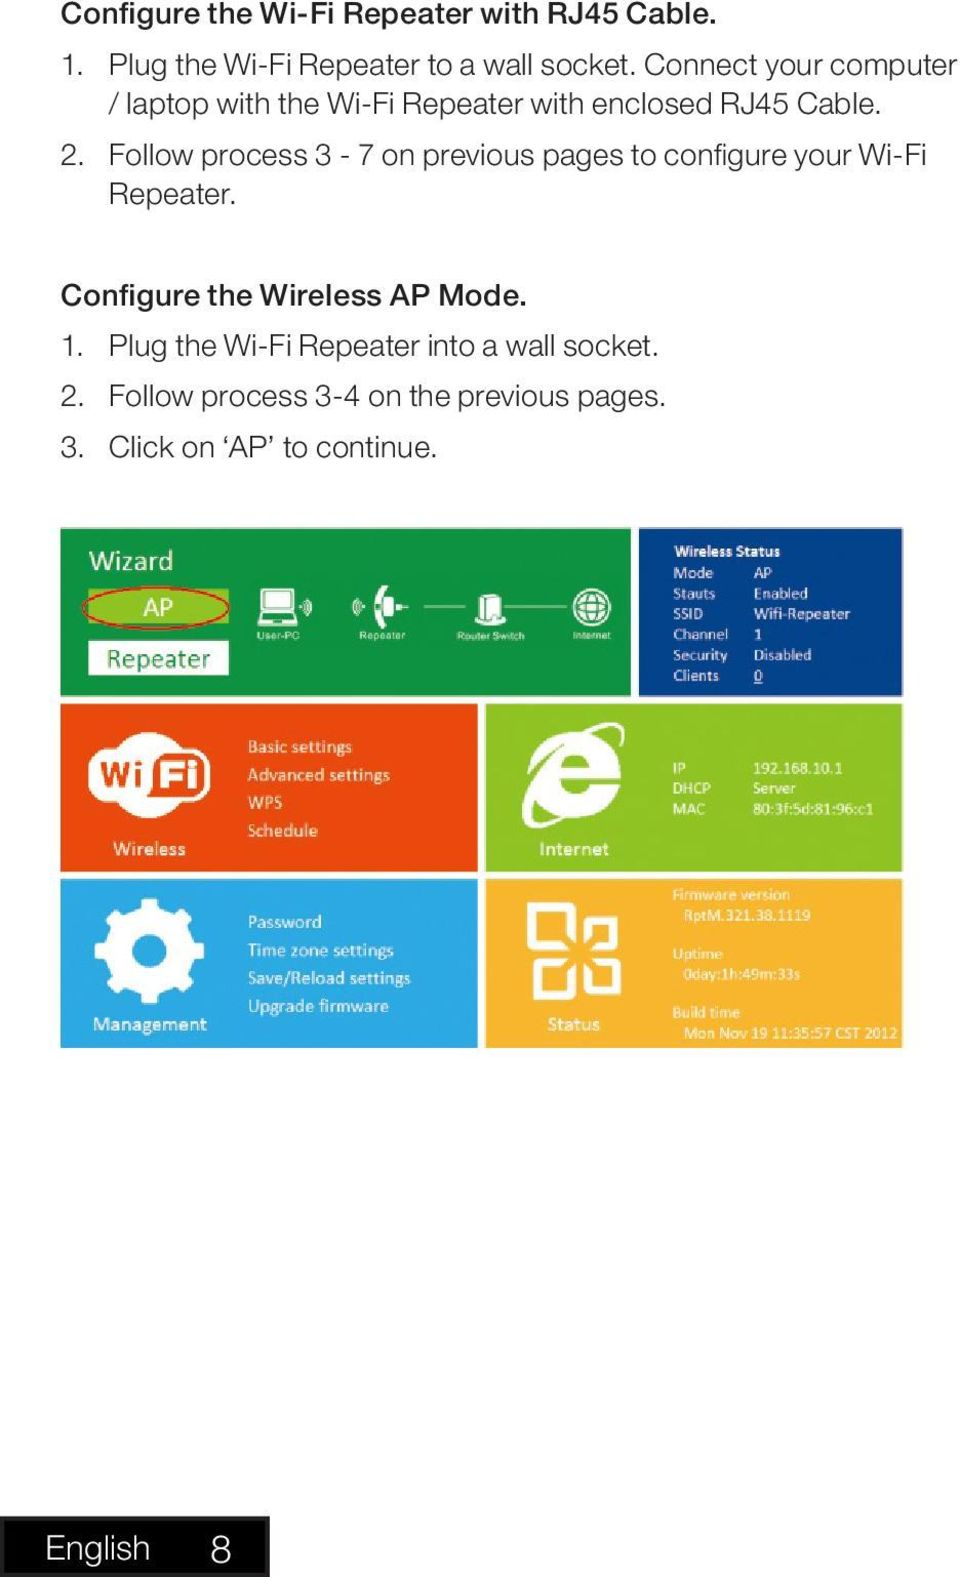 Follow process 3-7 on previous pages to configure your Wi-Fi Repeater. Configure the Wireless AP Mode.